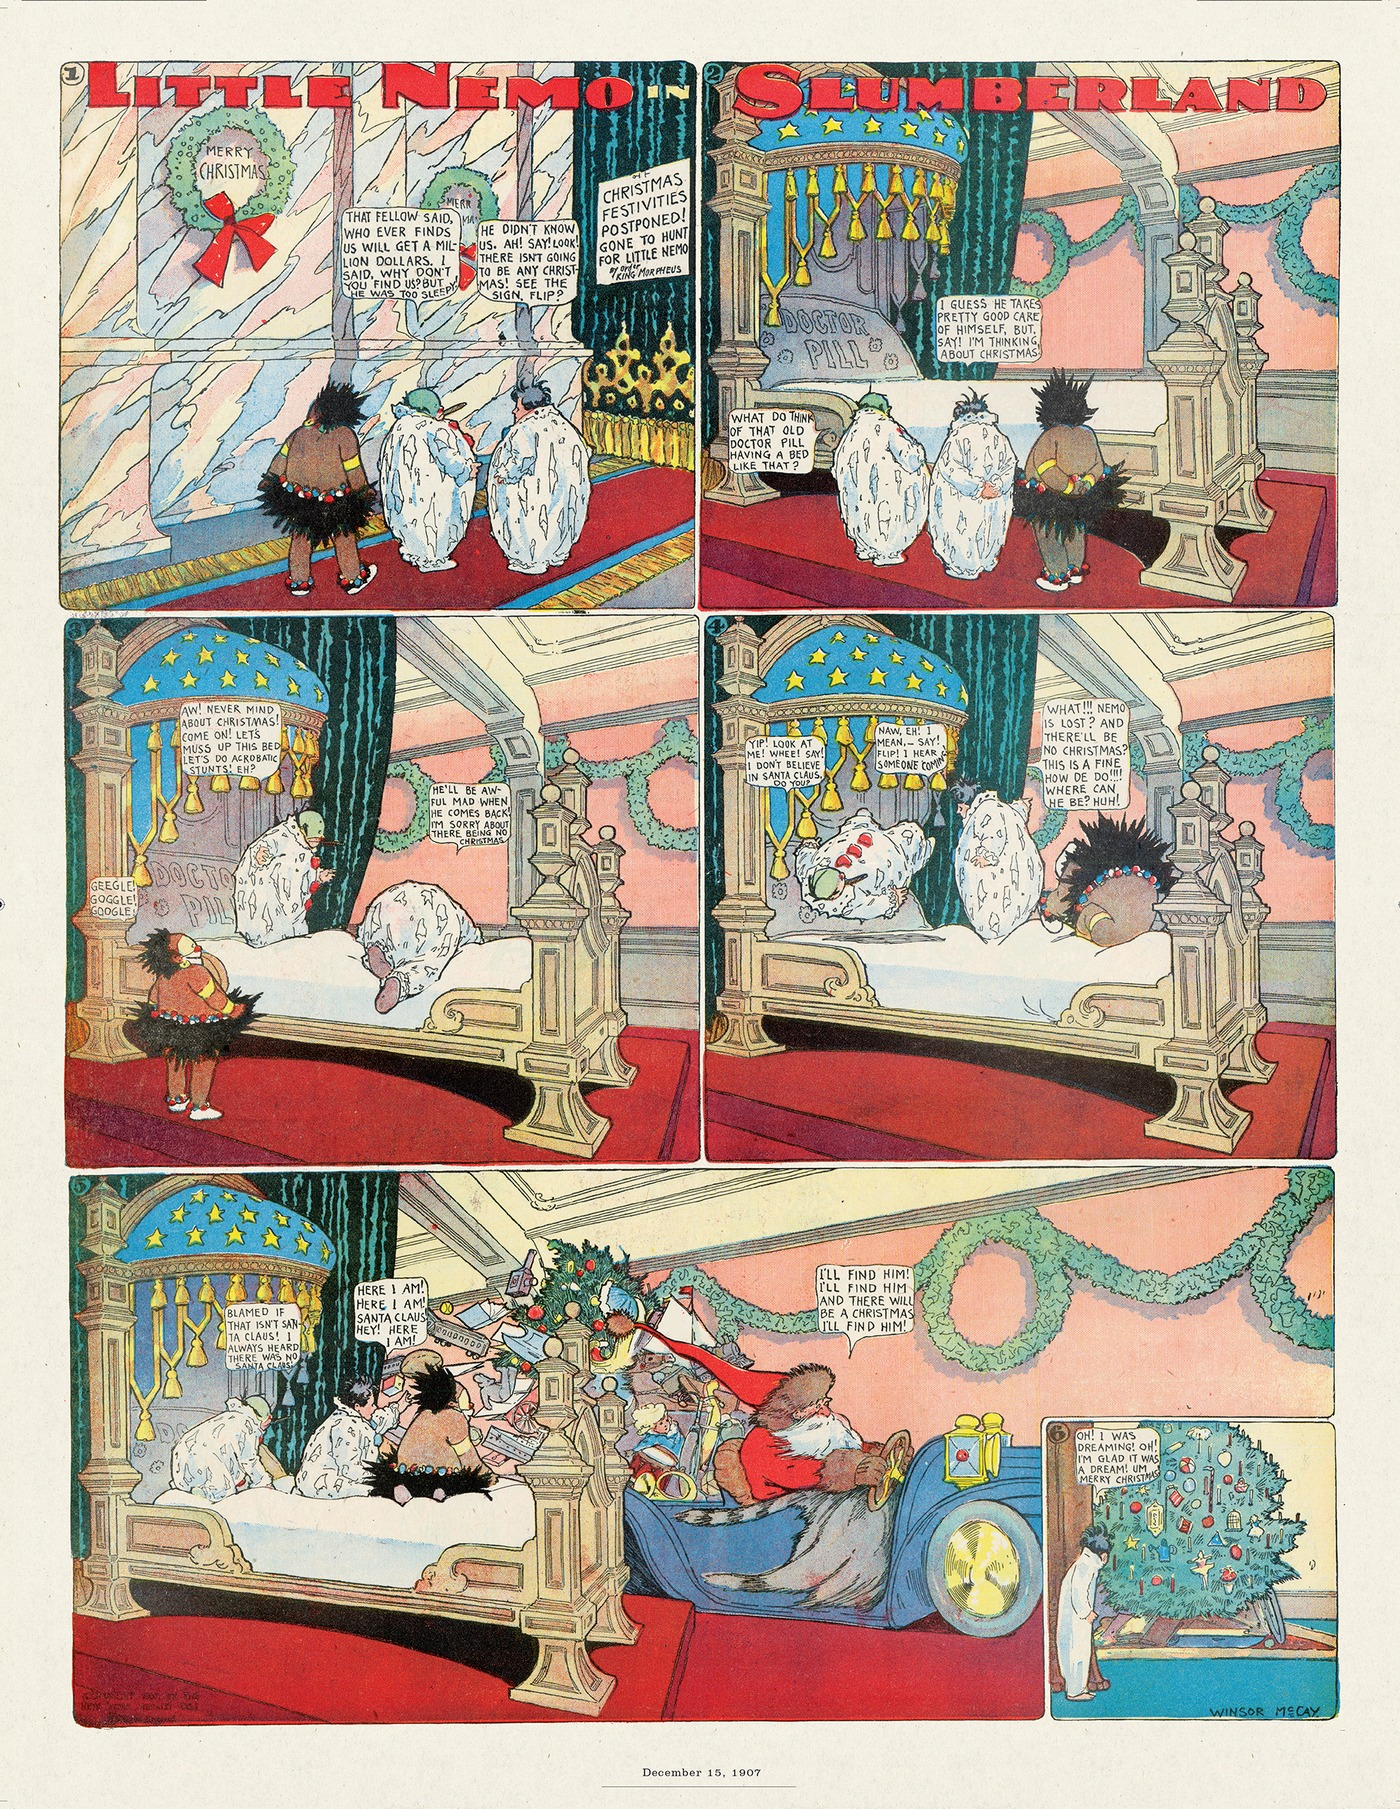 Little Nemo by Winsor McCay on Thu, 27 Aug 2020